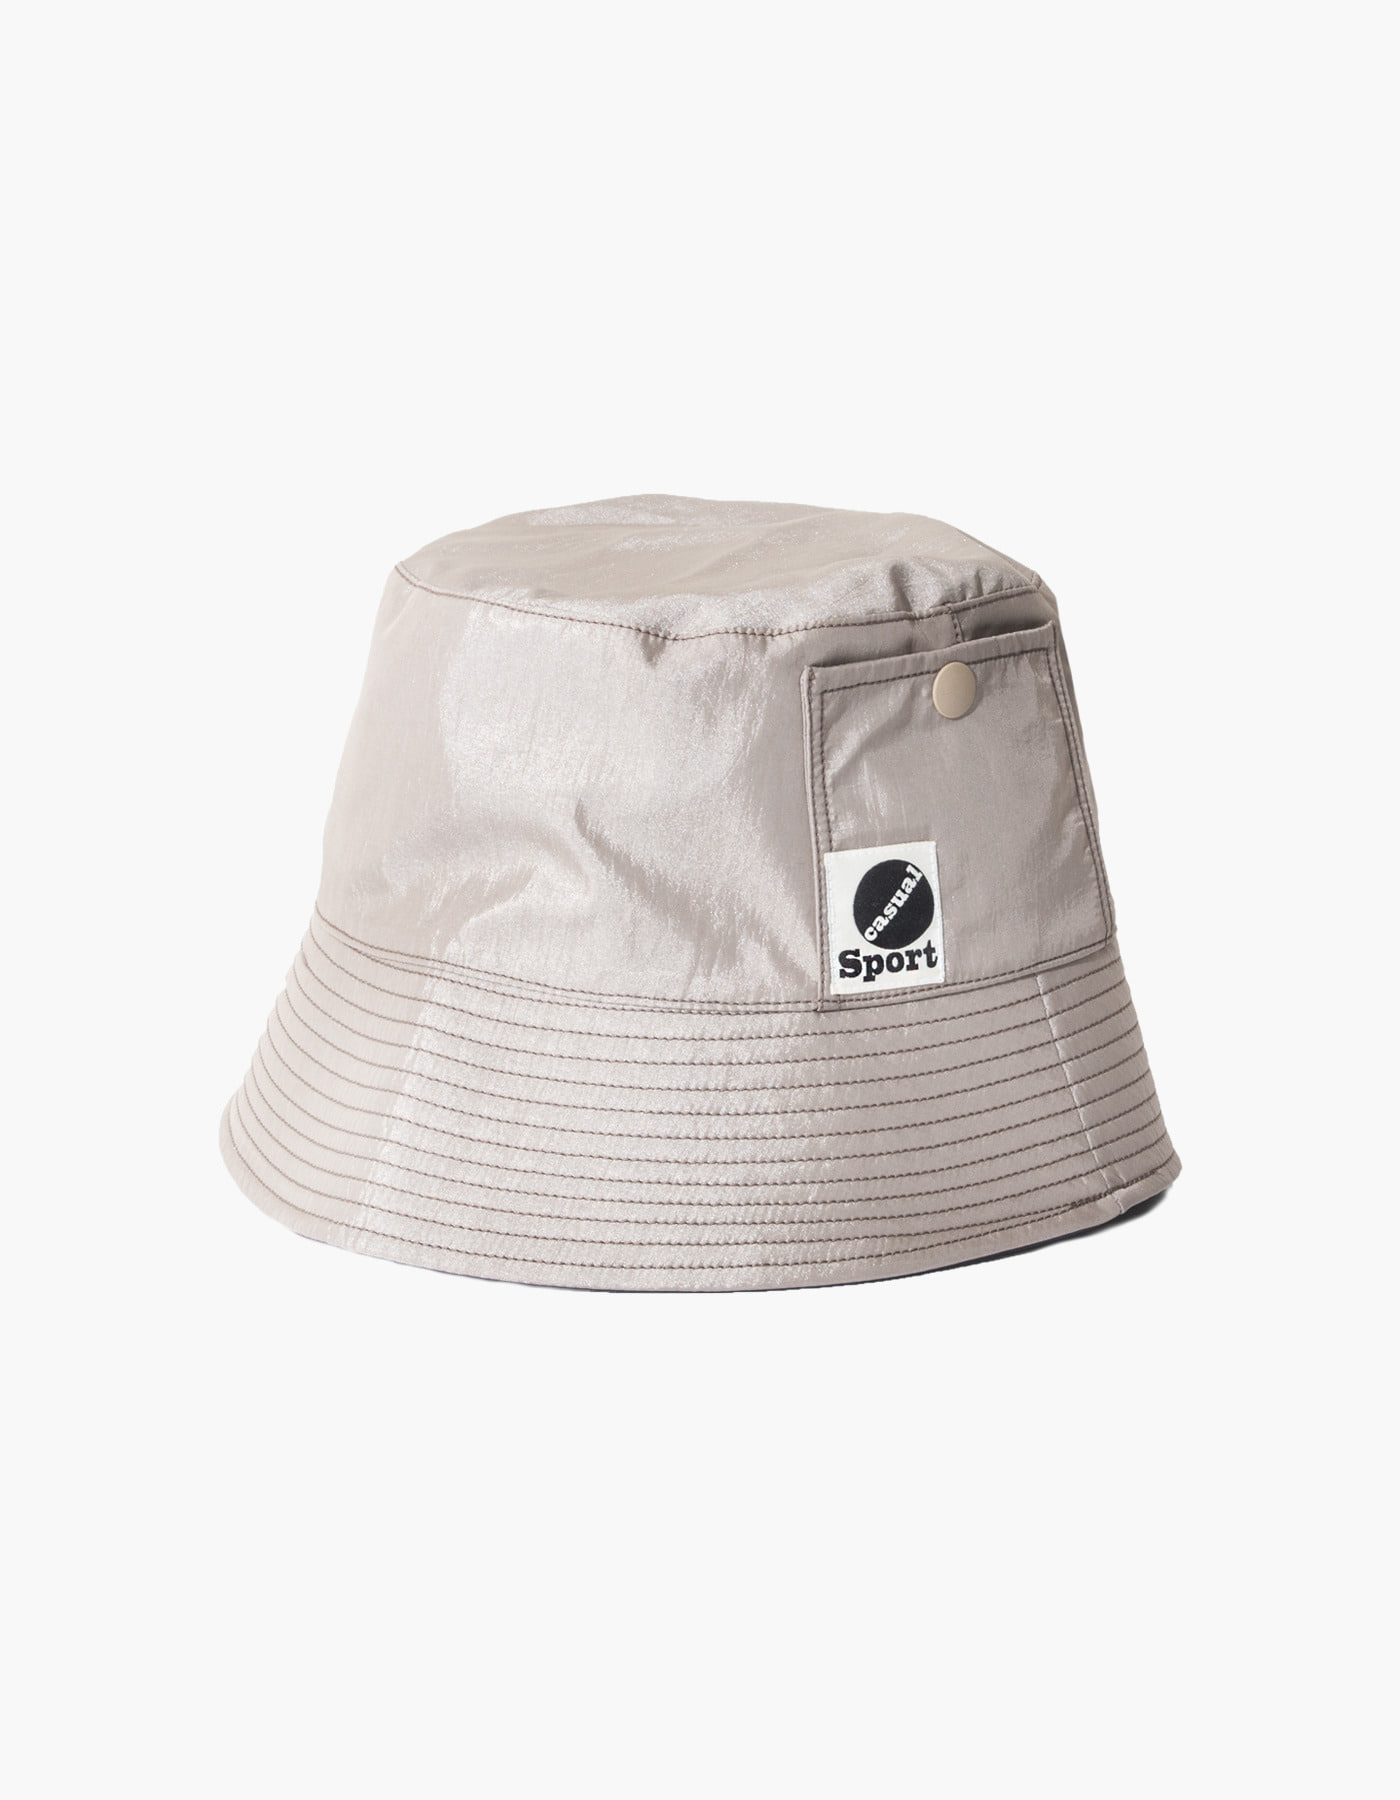 NYLON DIAMOND WASHER BUCKET HAT / BEIGE